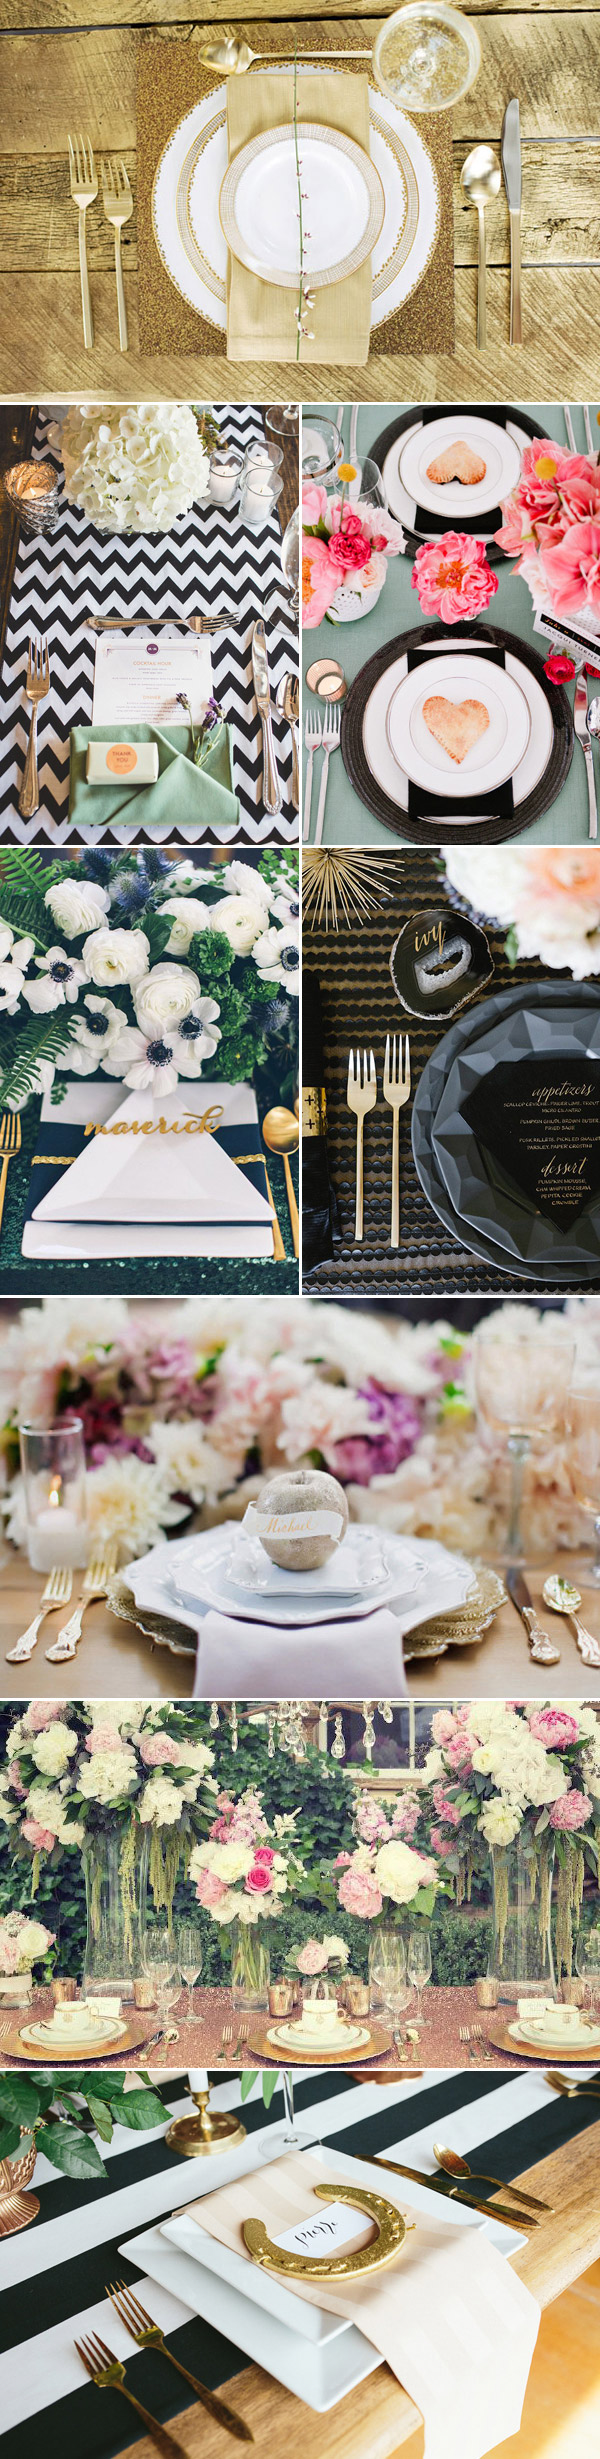 shustyle_wedding table_150121_07